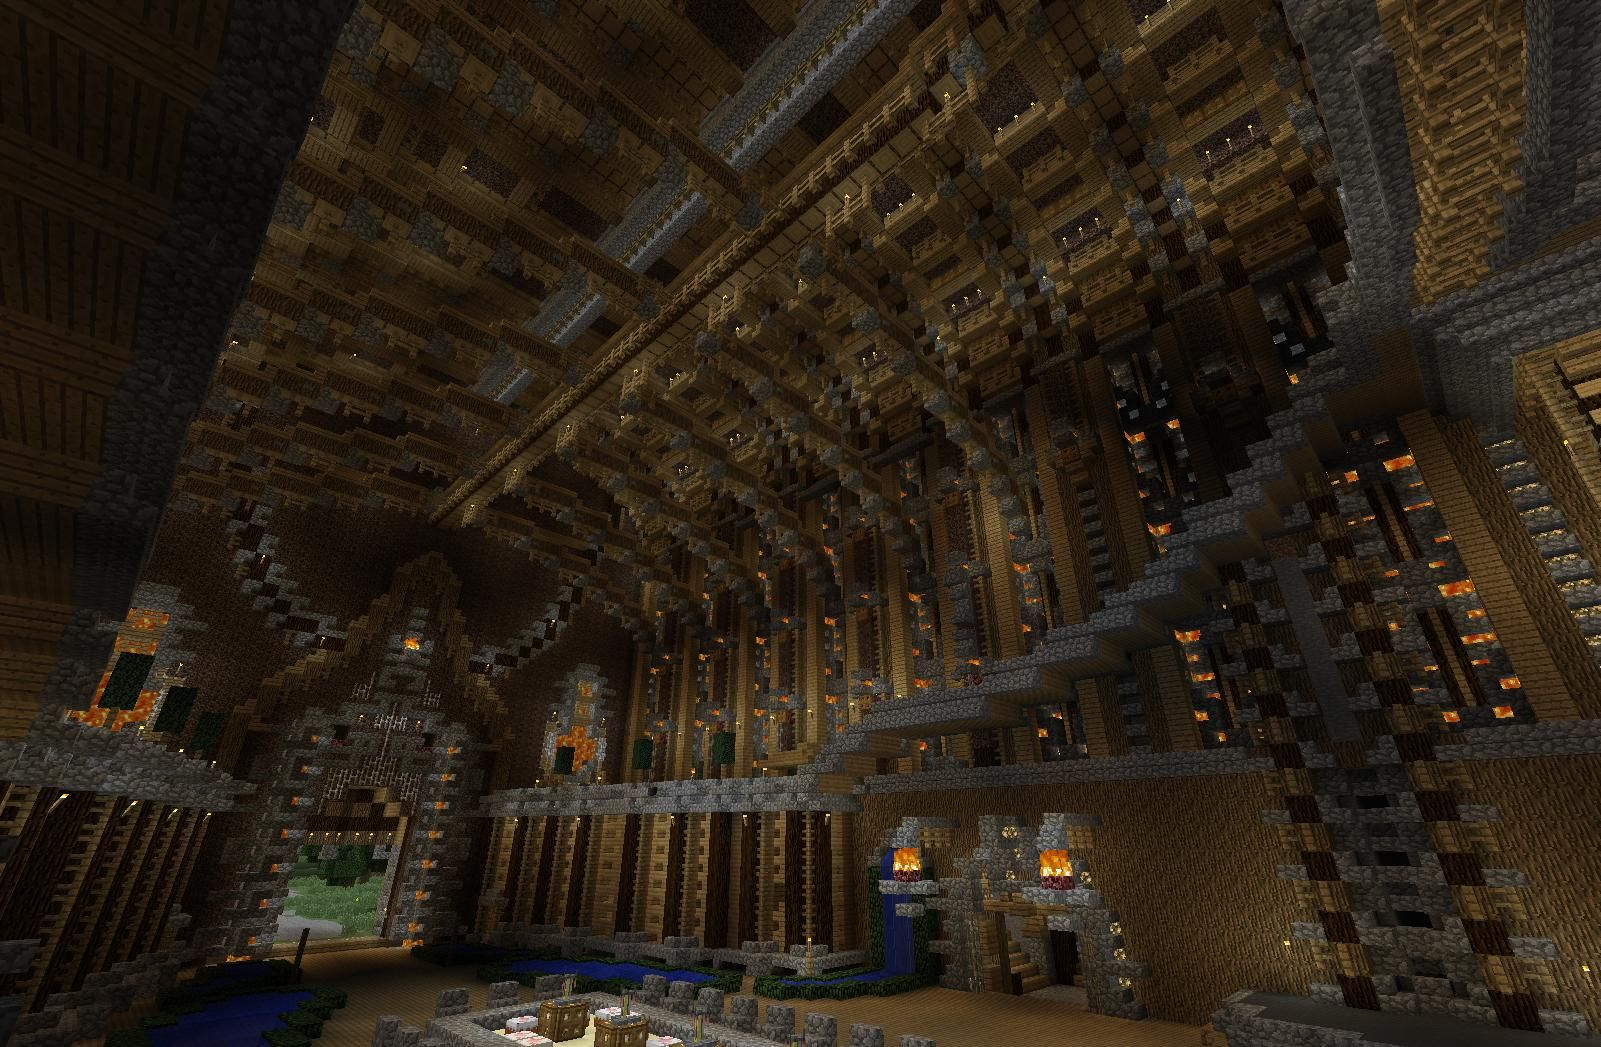 ancient norse buildings in minecraft - Google Search ...